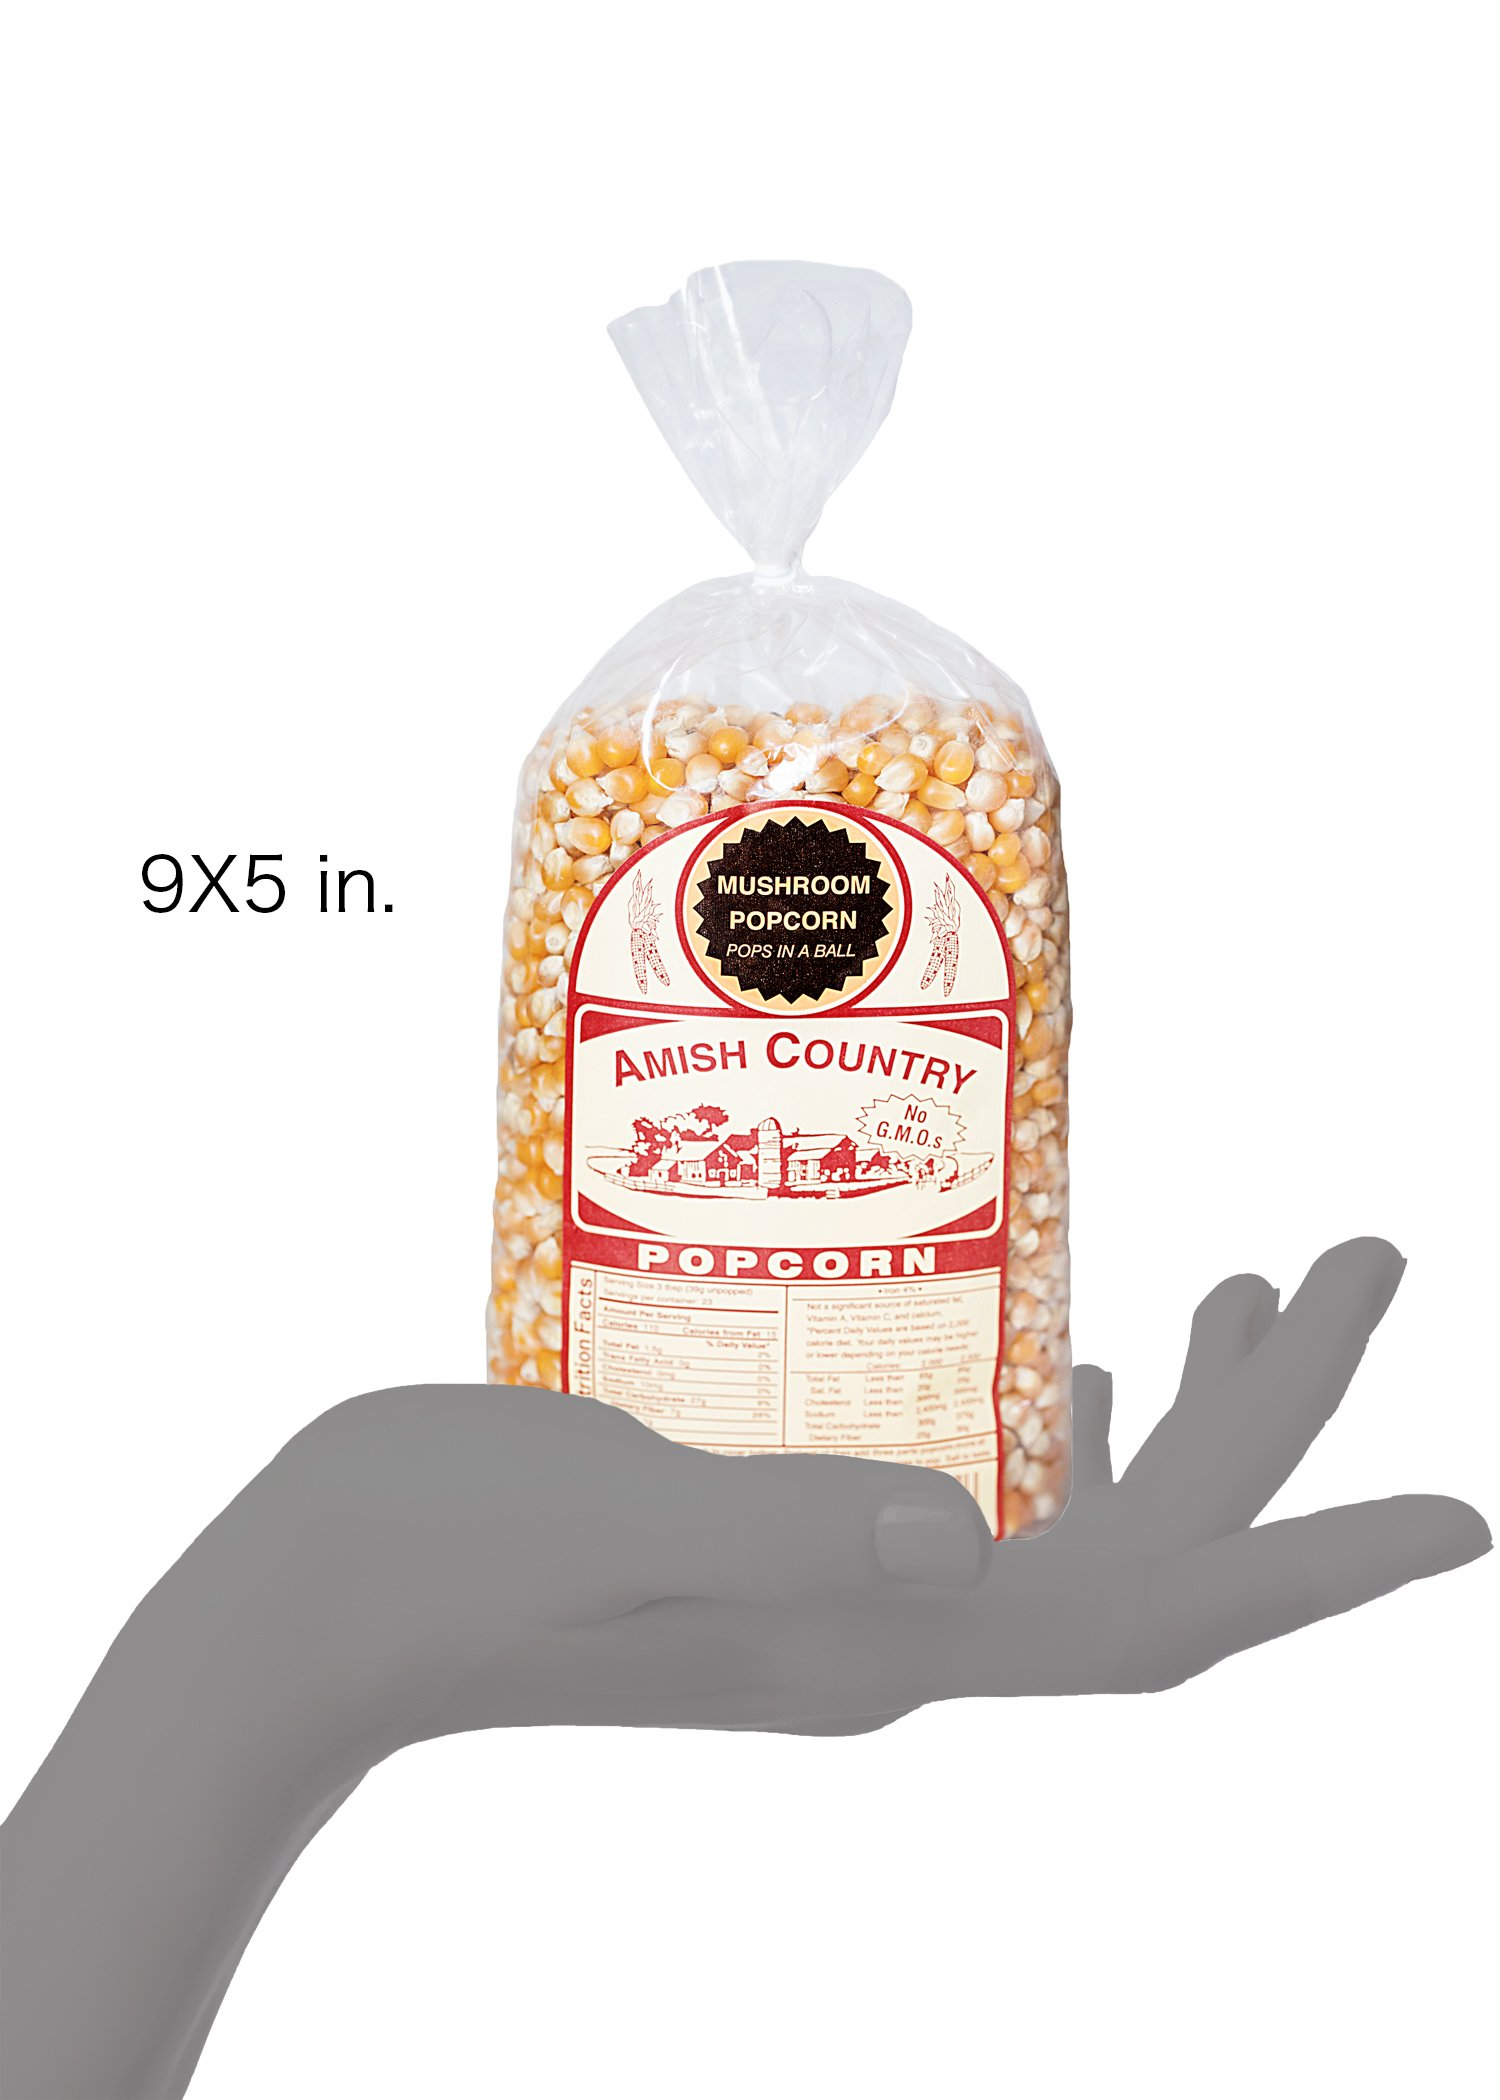 Amish Country Popcorn - Mushroom Popcorn (2 Pound Bag) With Recipe Guide - Old Fashioned, Non GMO, Gluten Free, Microwaveable, Stovetop and Air Popper Friendly by Amish Country Popcorn (Image #9)